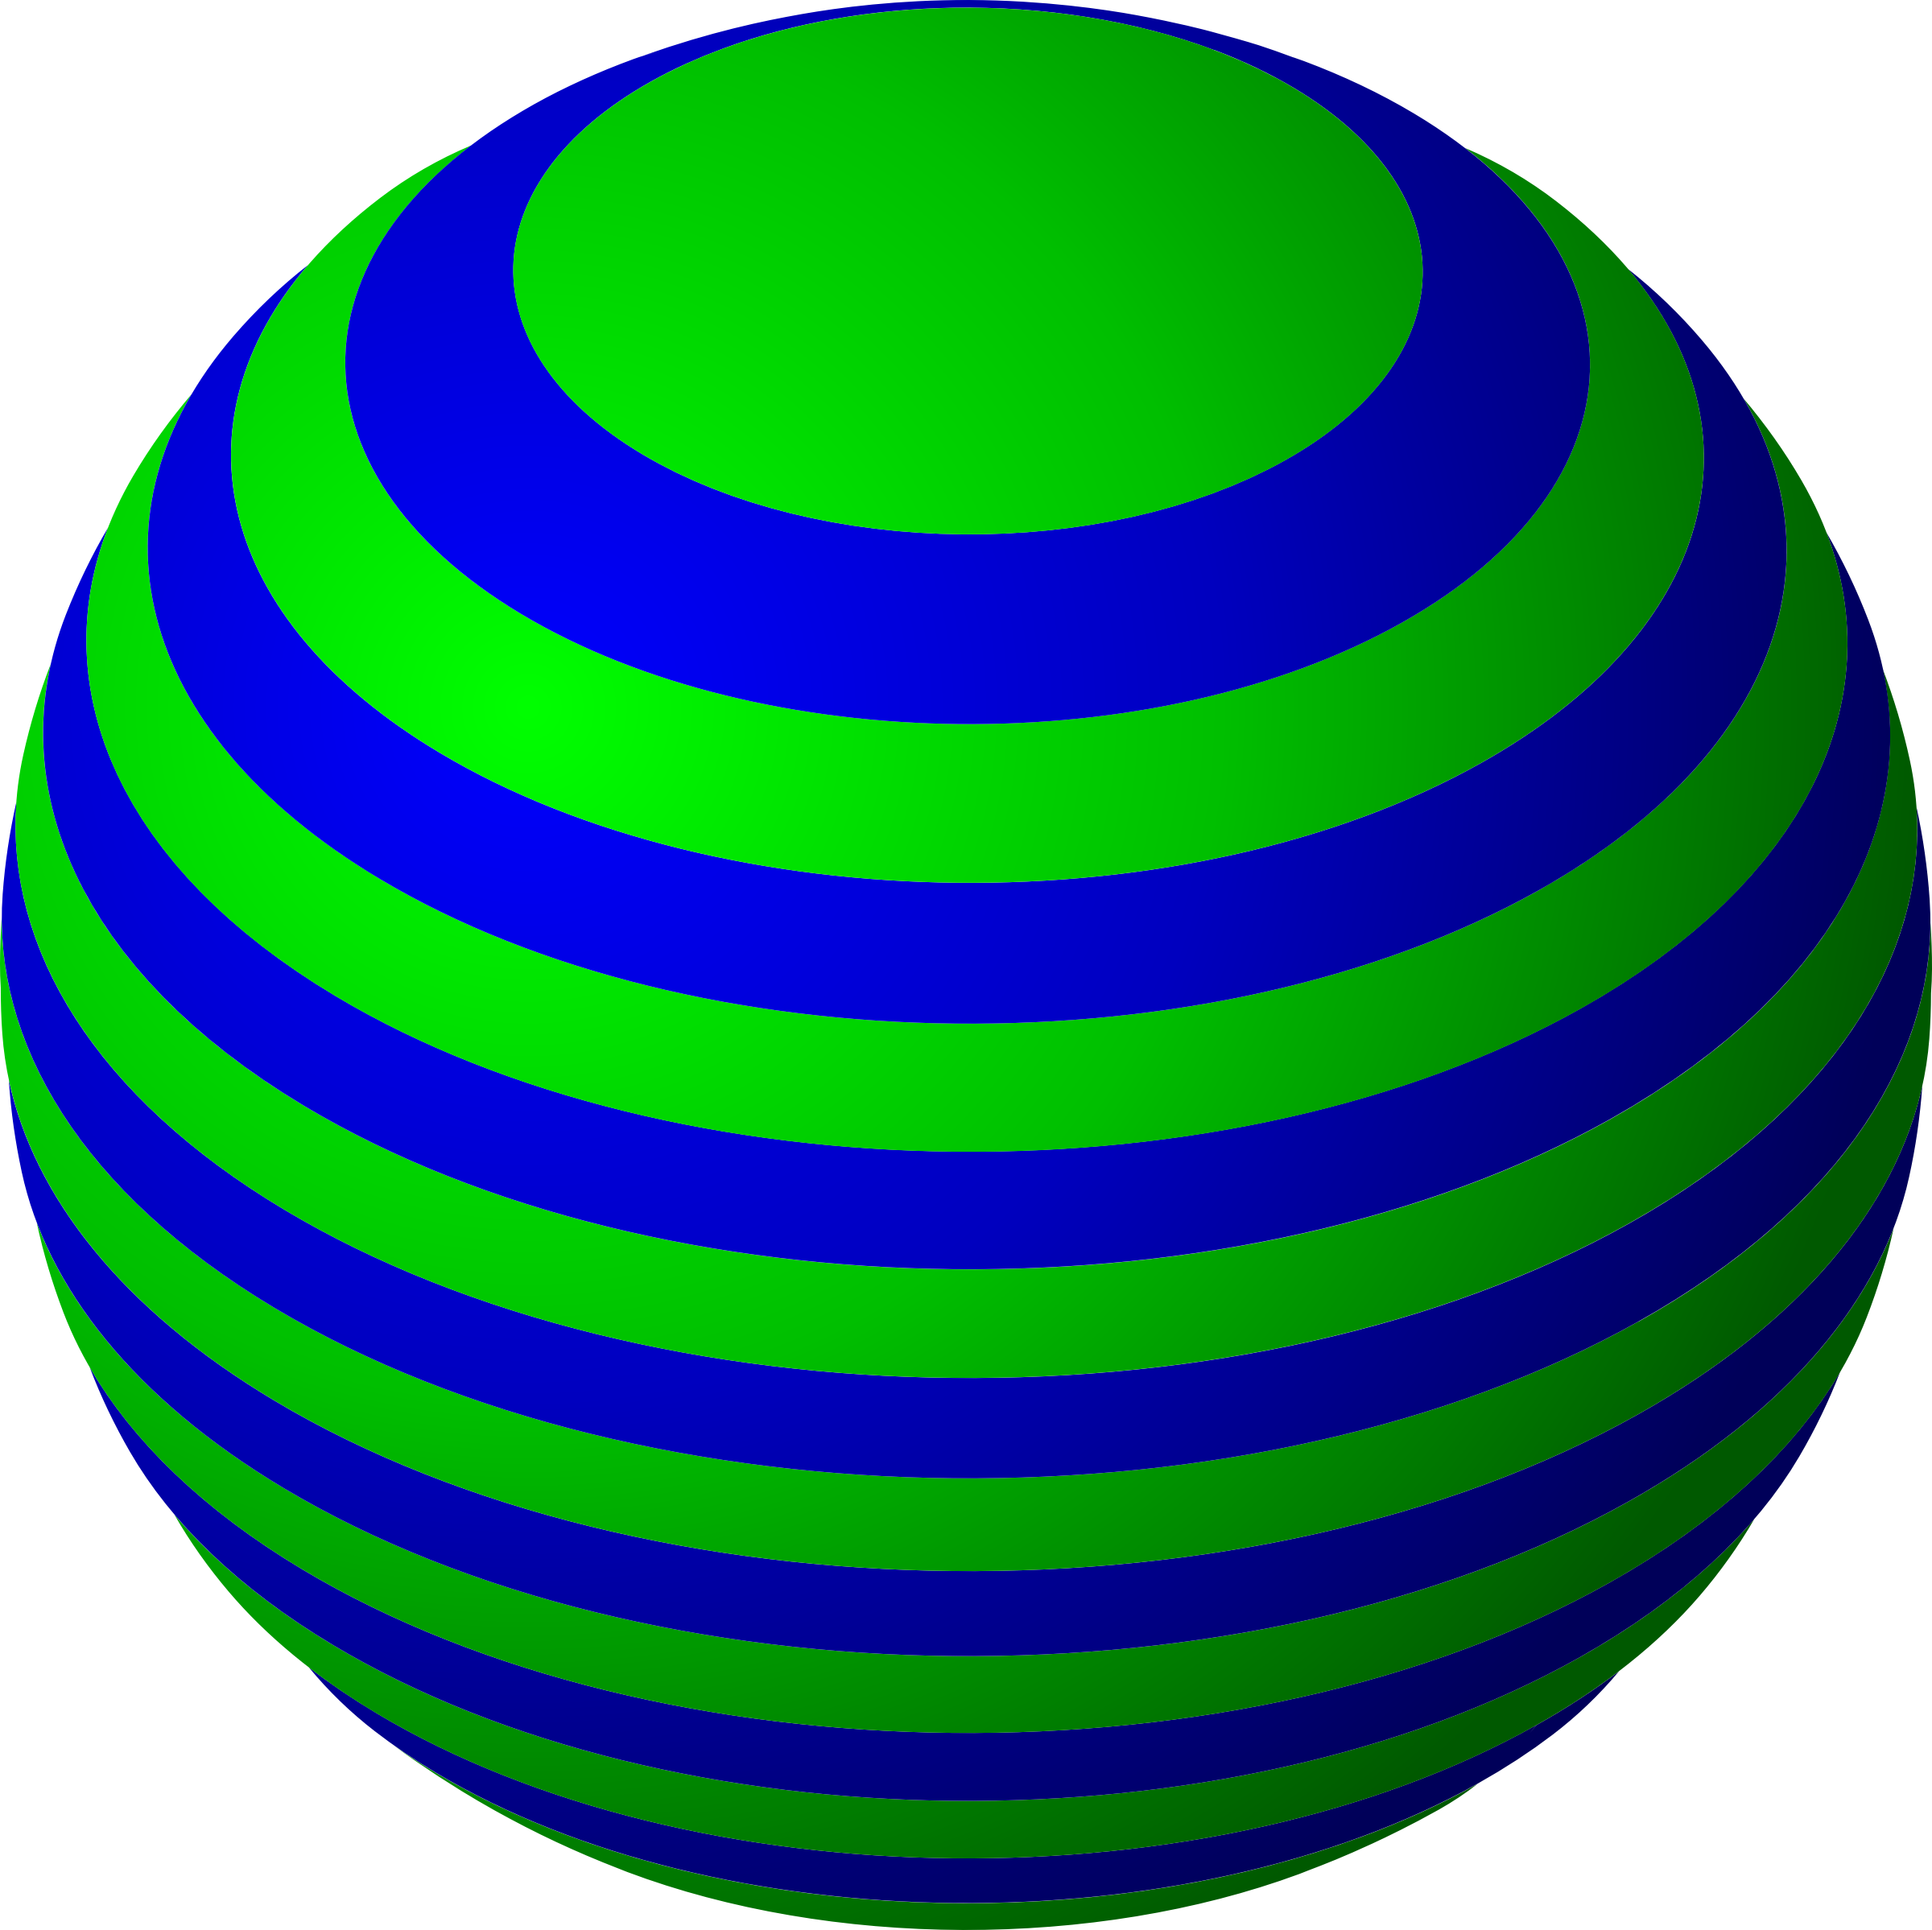 Ball clipart sphere. Striped big image png